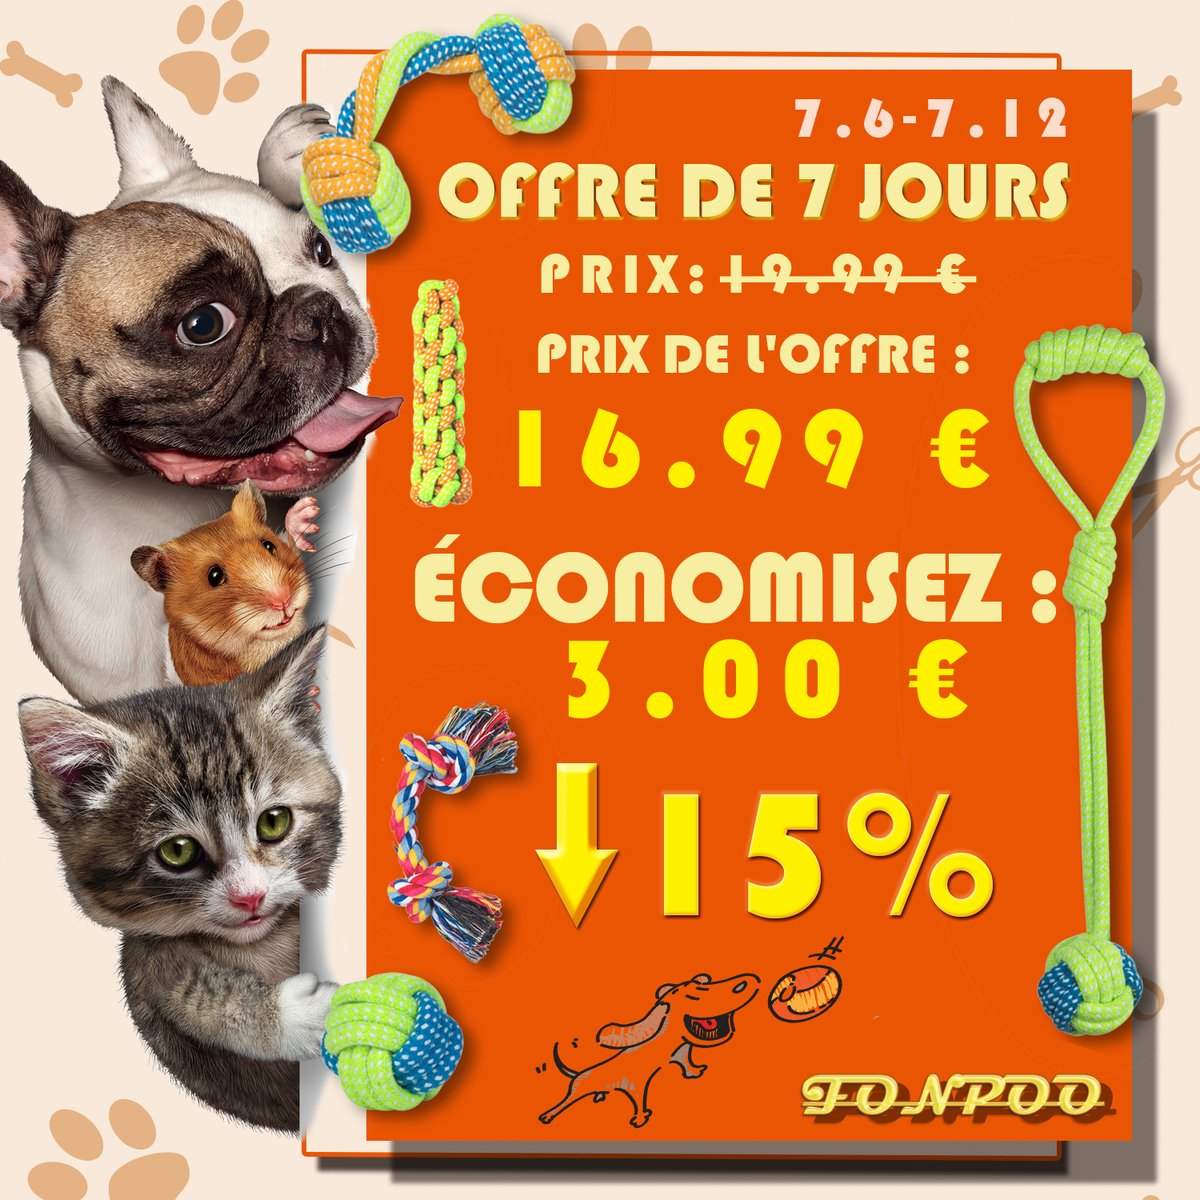 Offre de 7 jours(7.6-7.12) La réduction ne dure que quelques jours, vous pouvez obtenir le même bonheur pour votre chien à un prix inférieur ~ Get it from Amazon:https://amzn.to/2W48CJW  #FONPOO #Amazon #dogtoy #discount #dealpic.twitter.com/ij6DUfAuY1